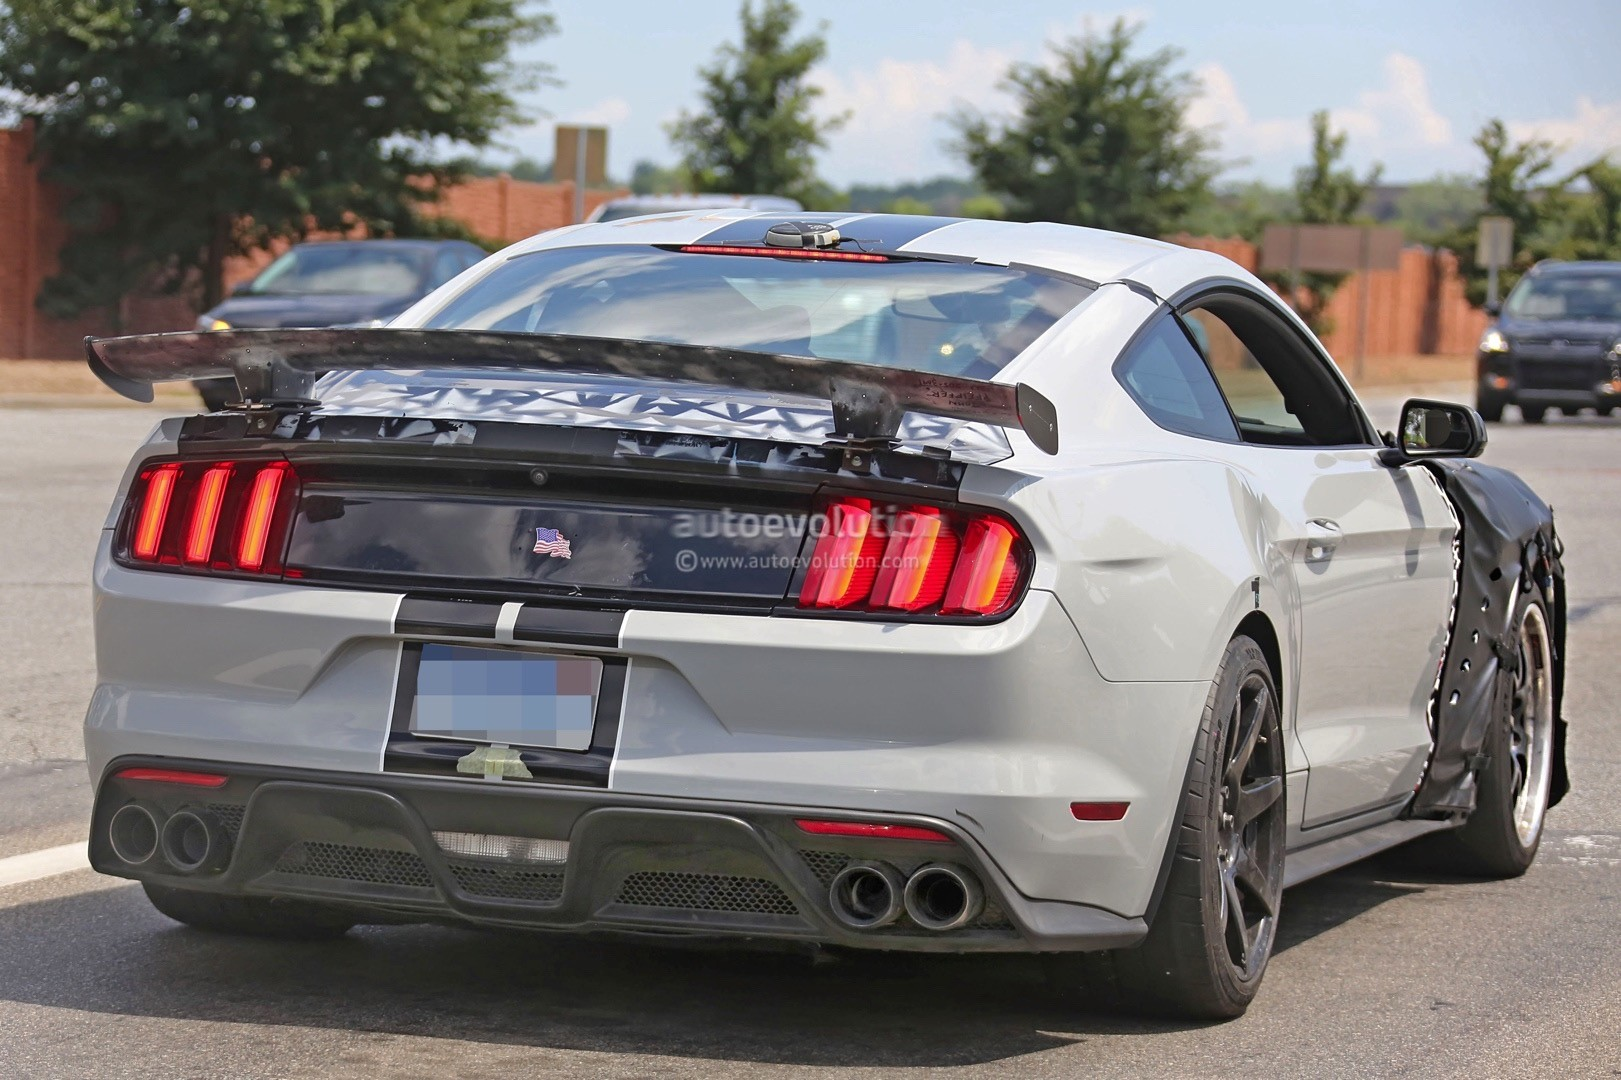 2019 Shelby GT500 Mustang Spied Benchmarking Against 2017 Camaro ZL1 - autoevolution